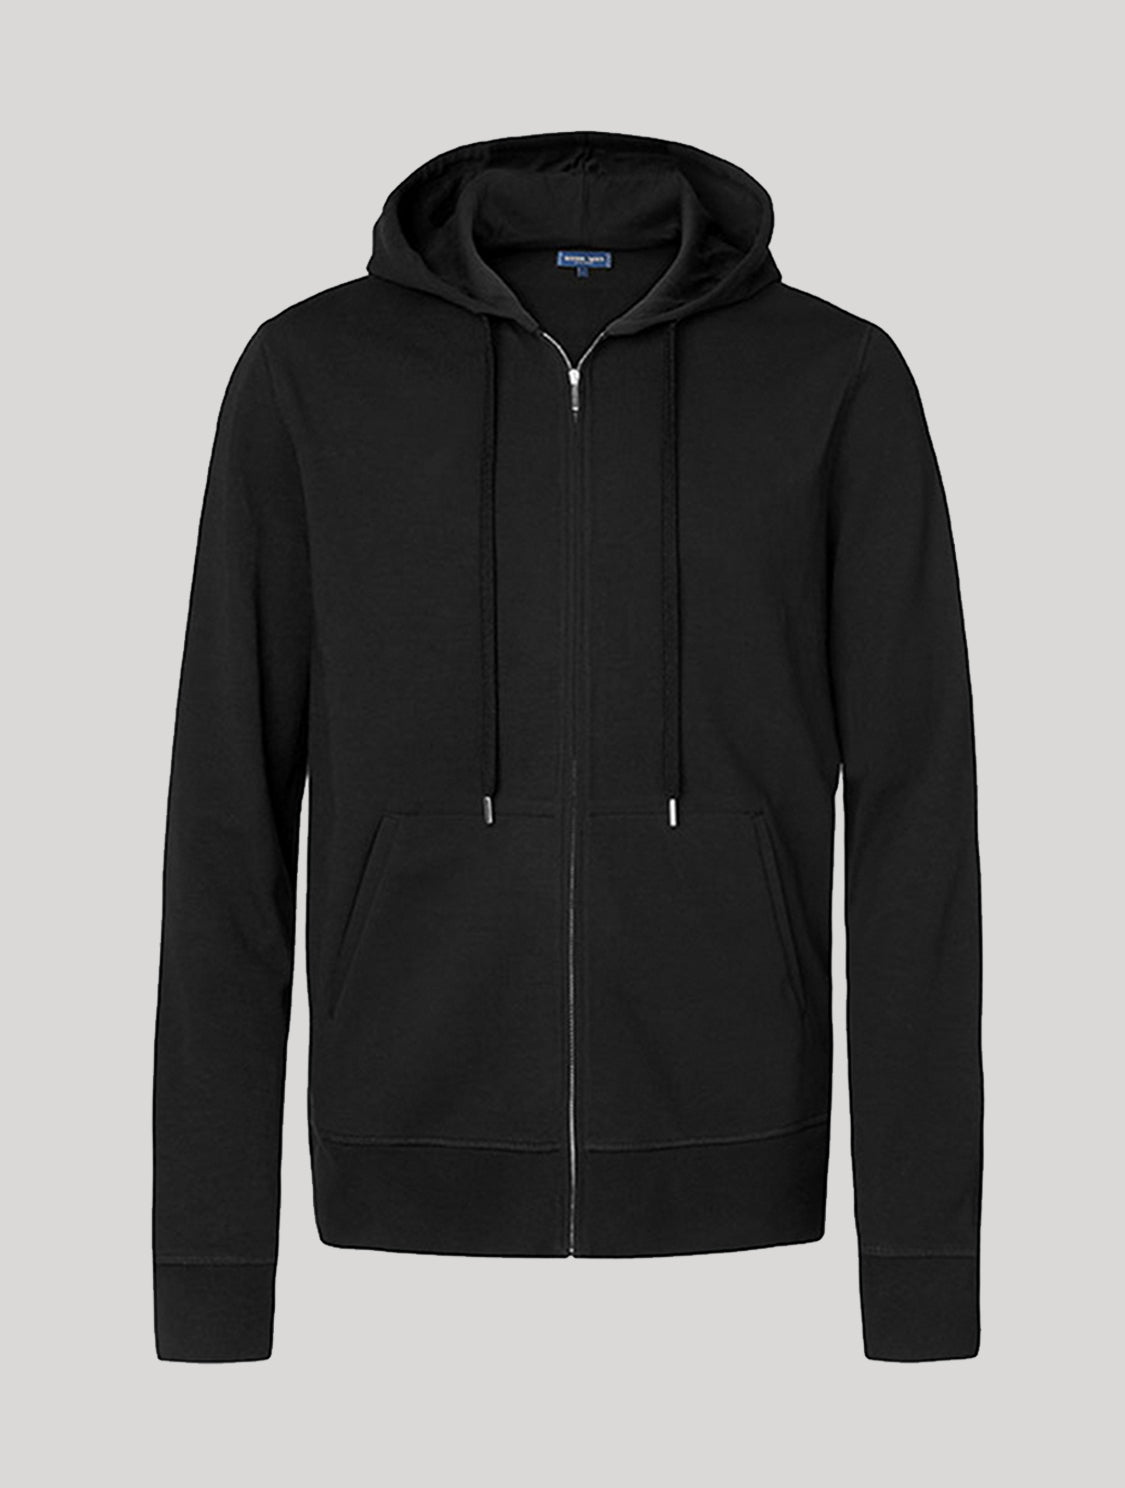 CANDIDO HOODED SWEATER